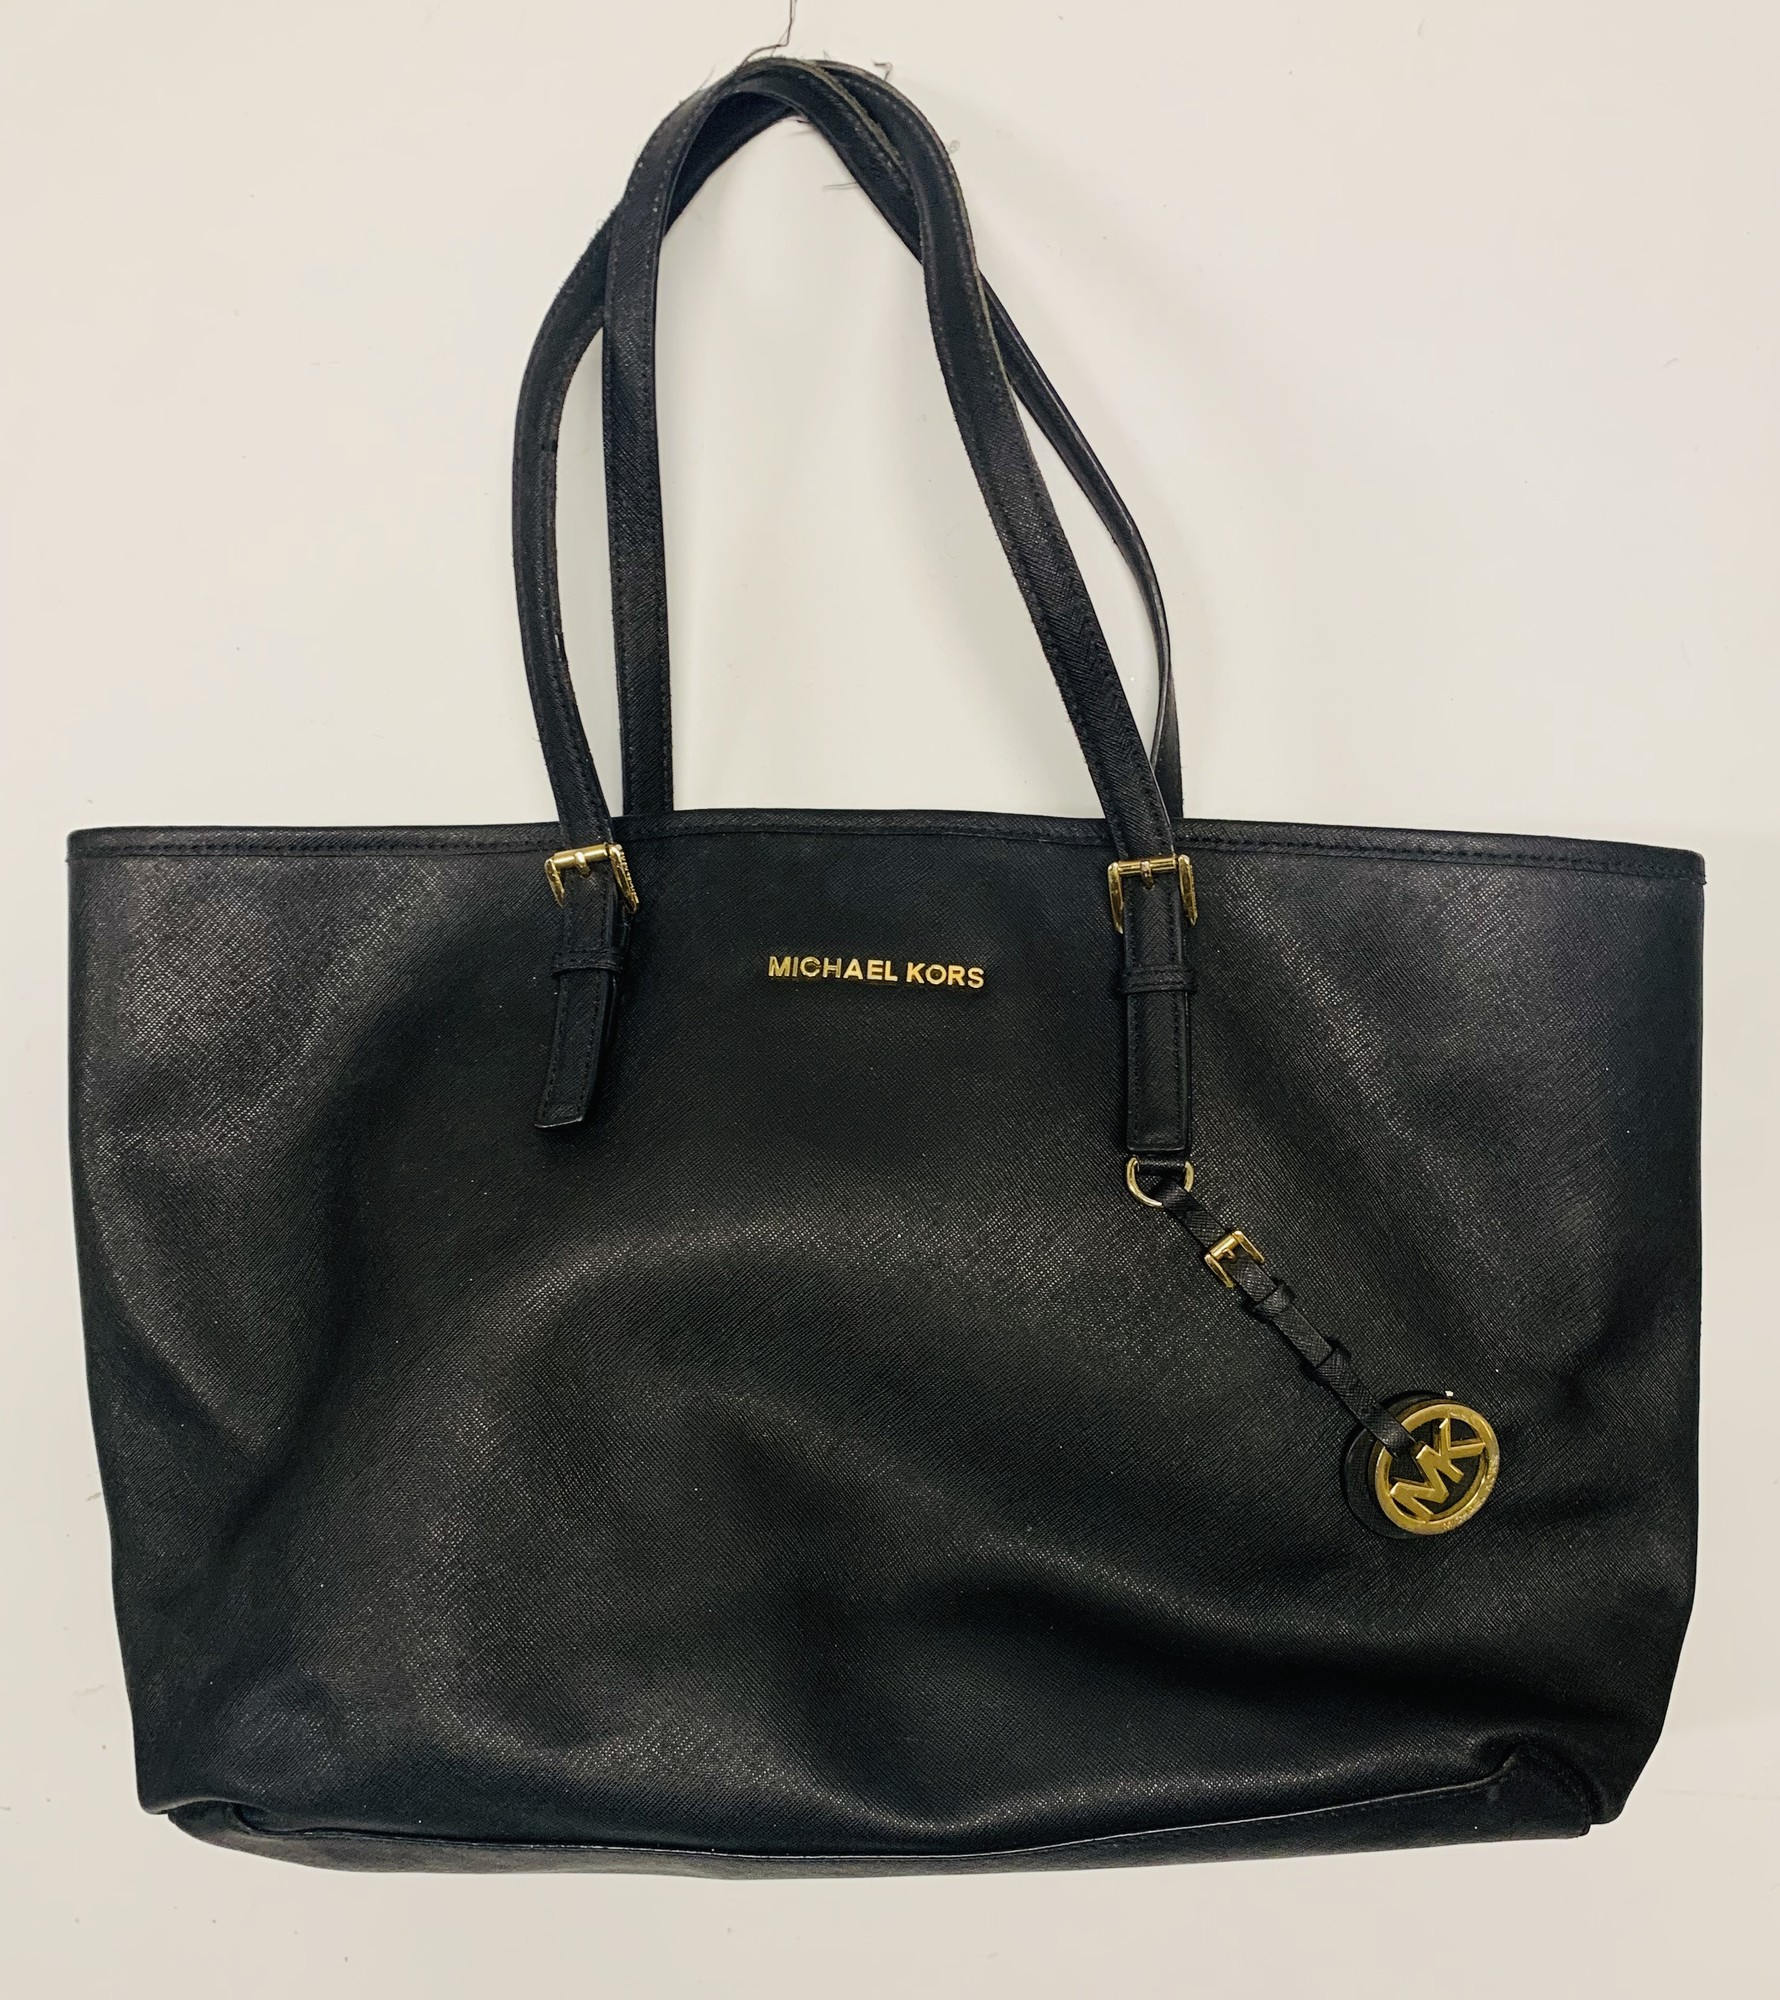 Michael Kors Tote Bag, Black, Size: None